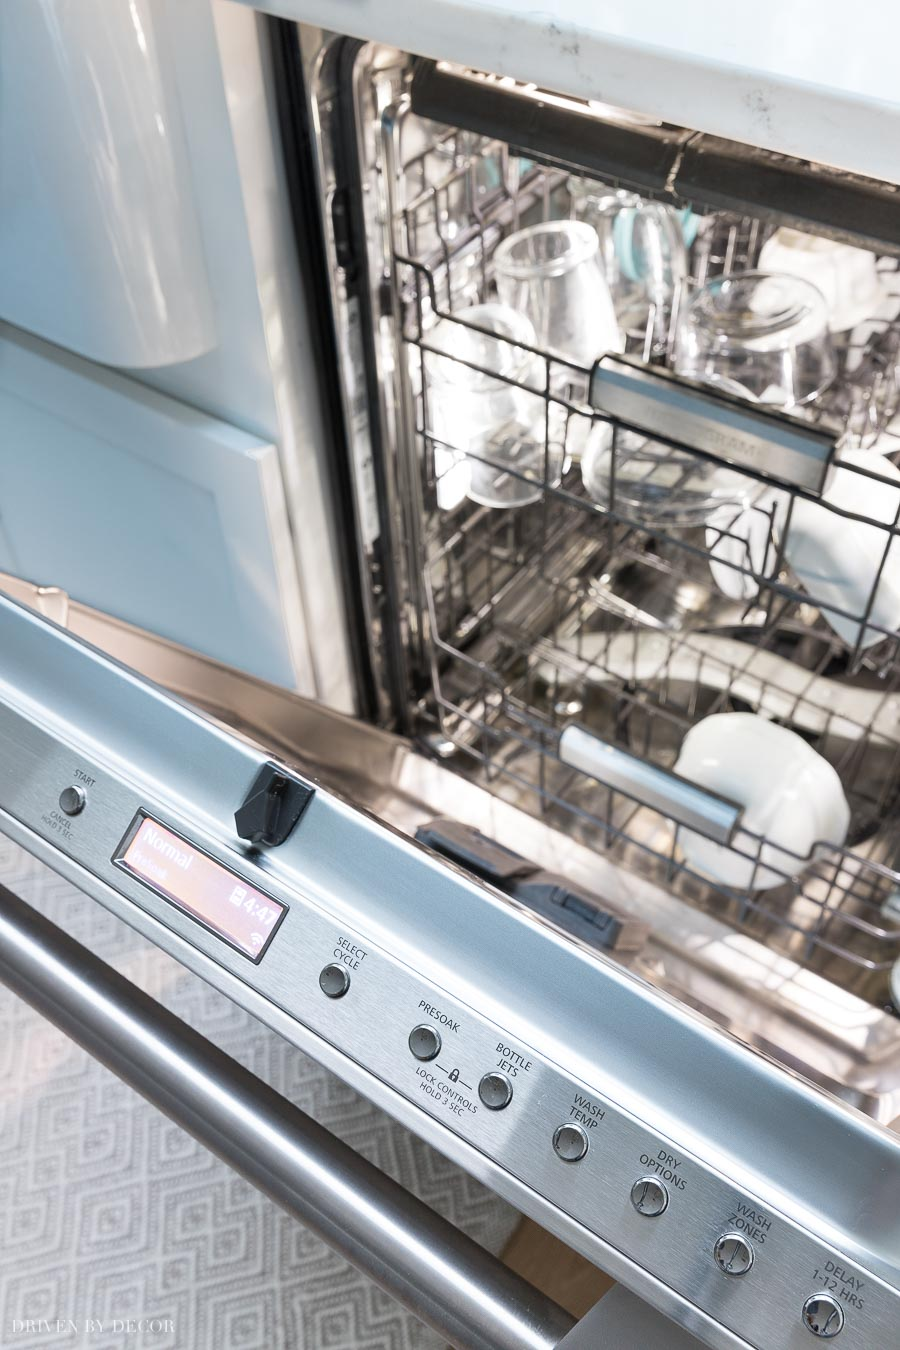 Love the LED lighting in my Monogram dishwasher! So easy to see if the dishes are clean!